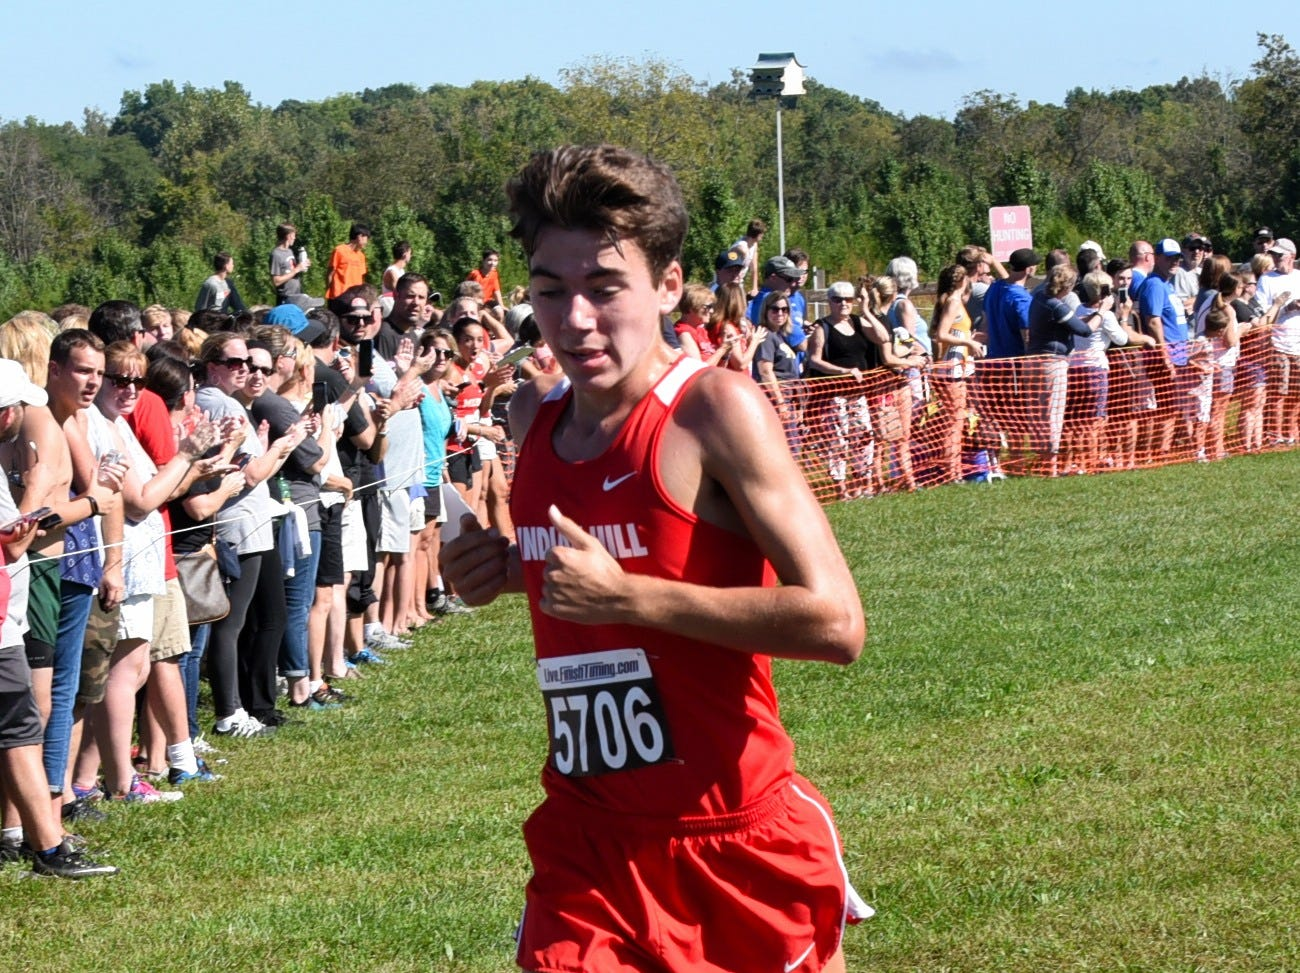 Ben Bayless of Indian Hill steps his way to a first-place finish in the varsity boys 5K race at the 2018 Milford Cross Country Invitational, Sept. 15, 2018.